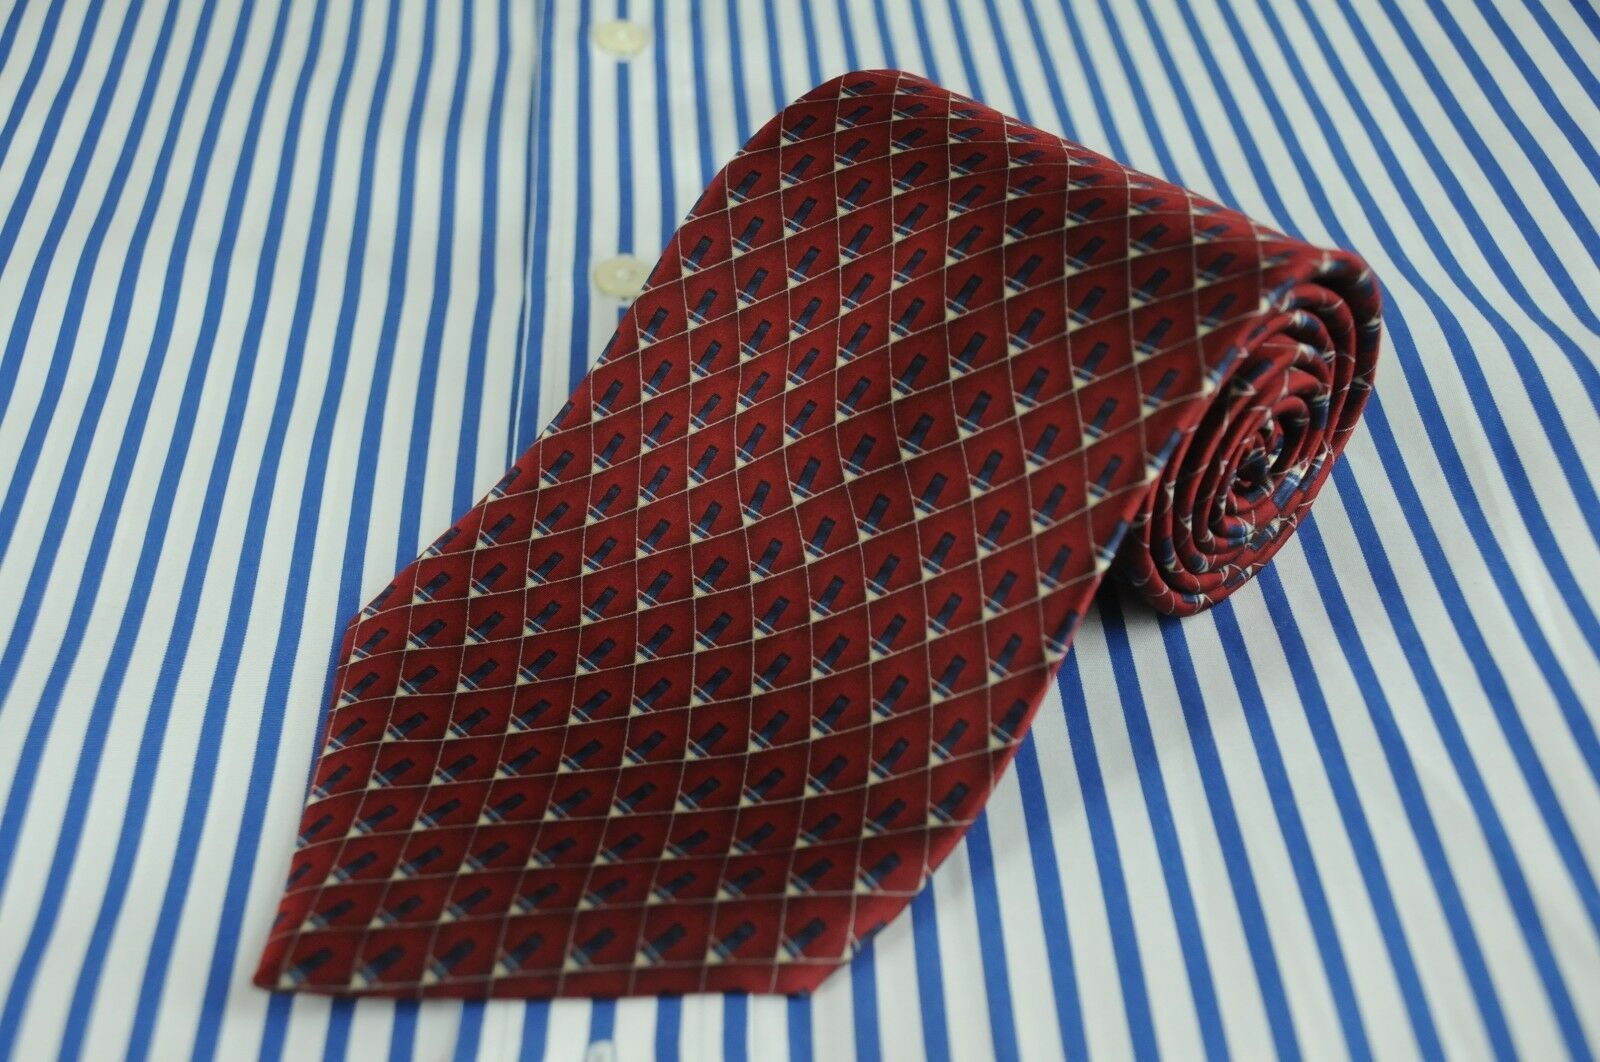 Primary image for Bill Blass NEO Men's Red & Blue Geometric Printed Silk Necktie 59 x 4 in.